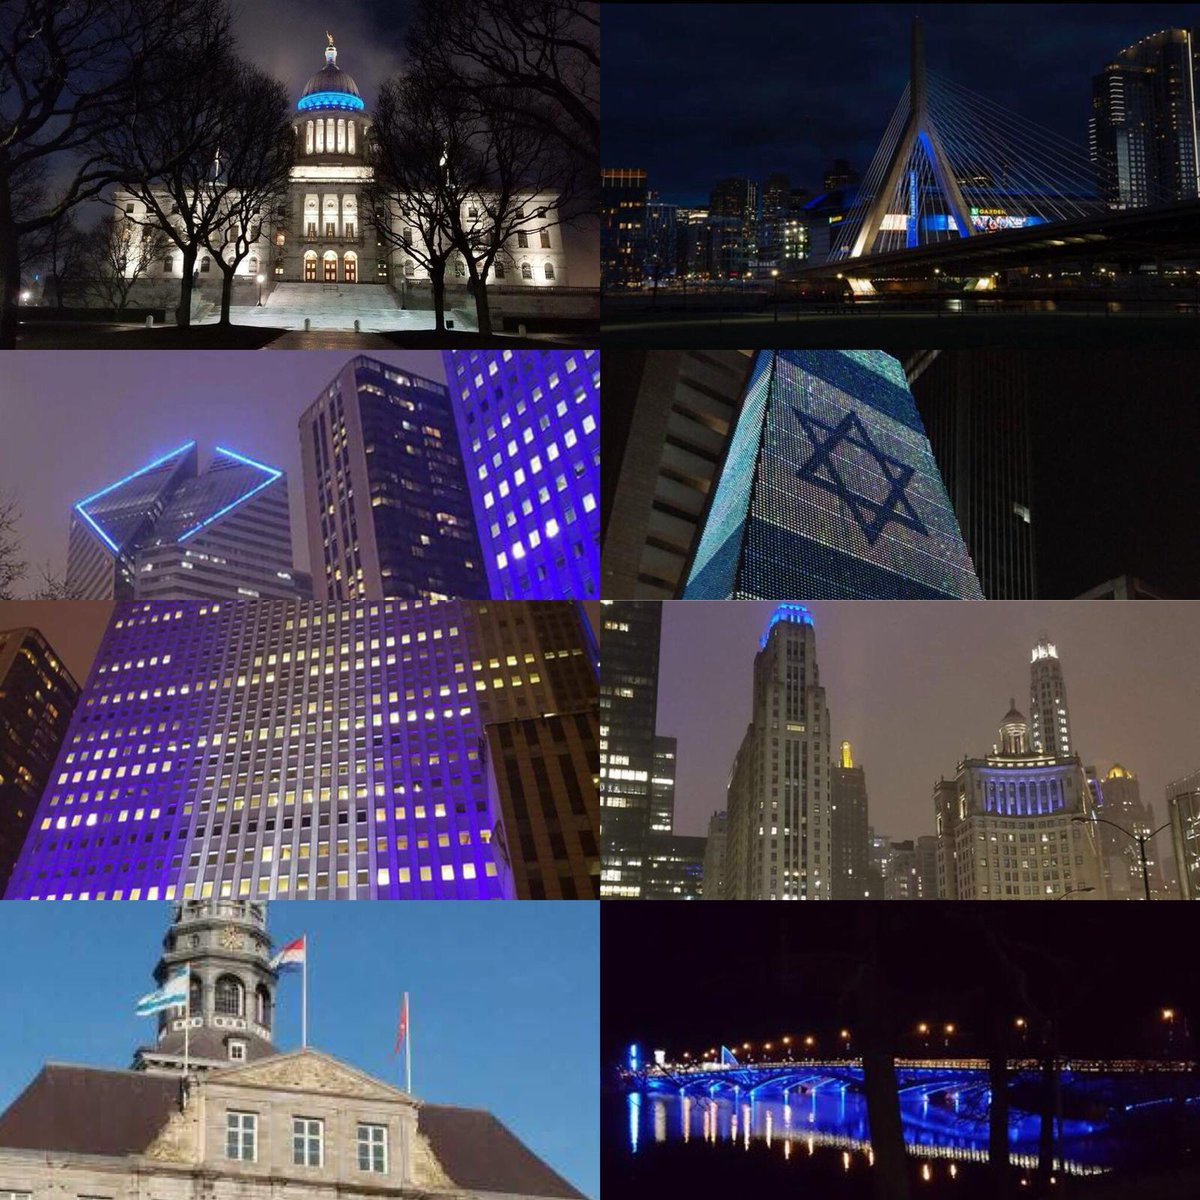 Thank you to all our friends around the world who illuminated buildings in blue and white in honor of Israel's Independence Day: Chicago, Providence, Boston, Maastricht, São Paulo, and many other places. The people of Israel appreciate your support!